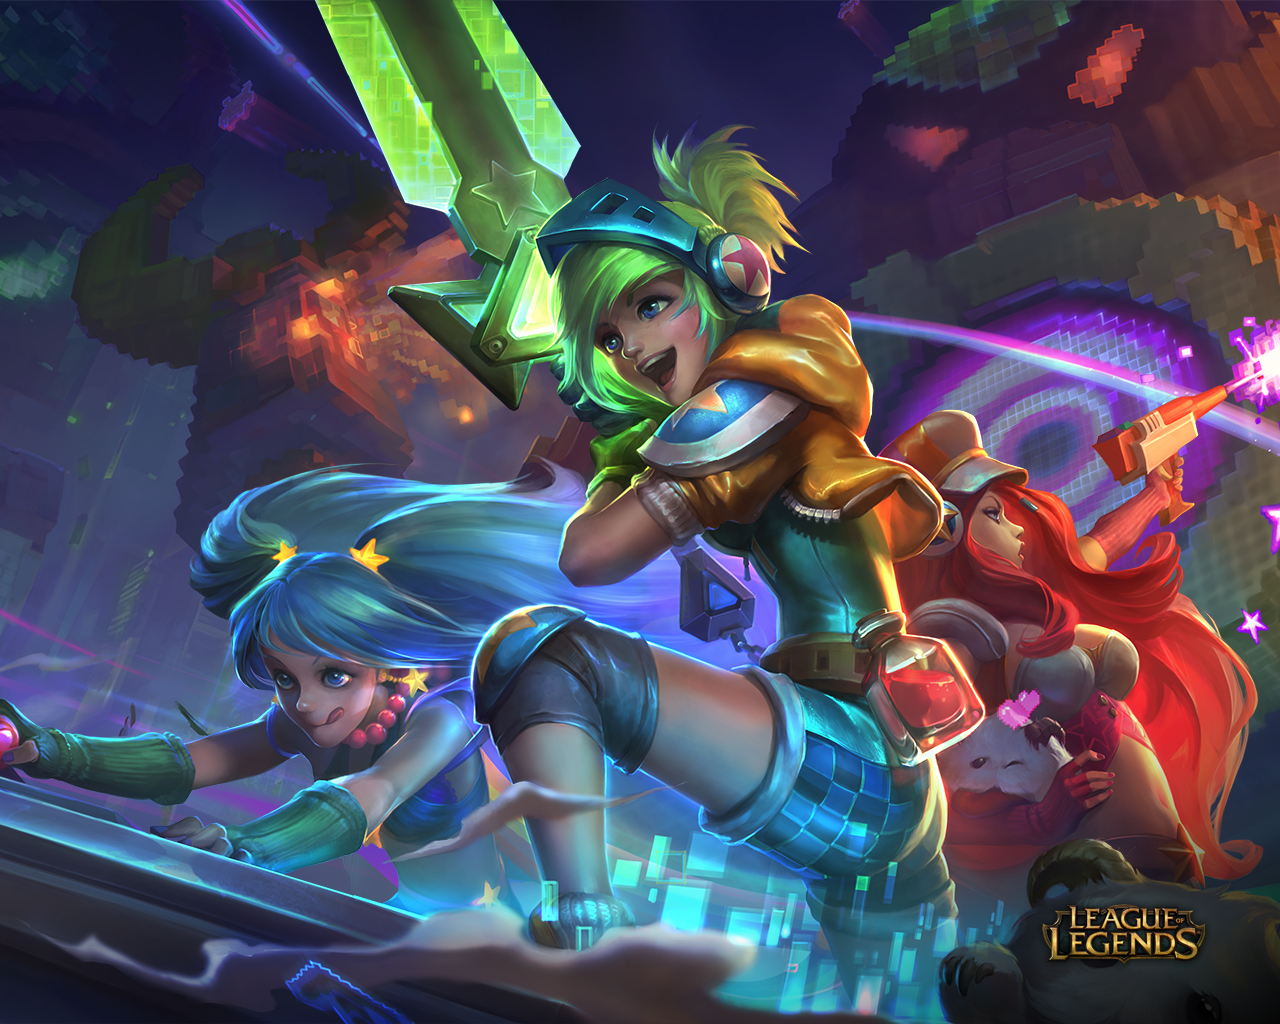 League of legends wallpaper pack - 1280x1024 1920x1080 1920x1200 3840x1080